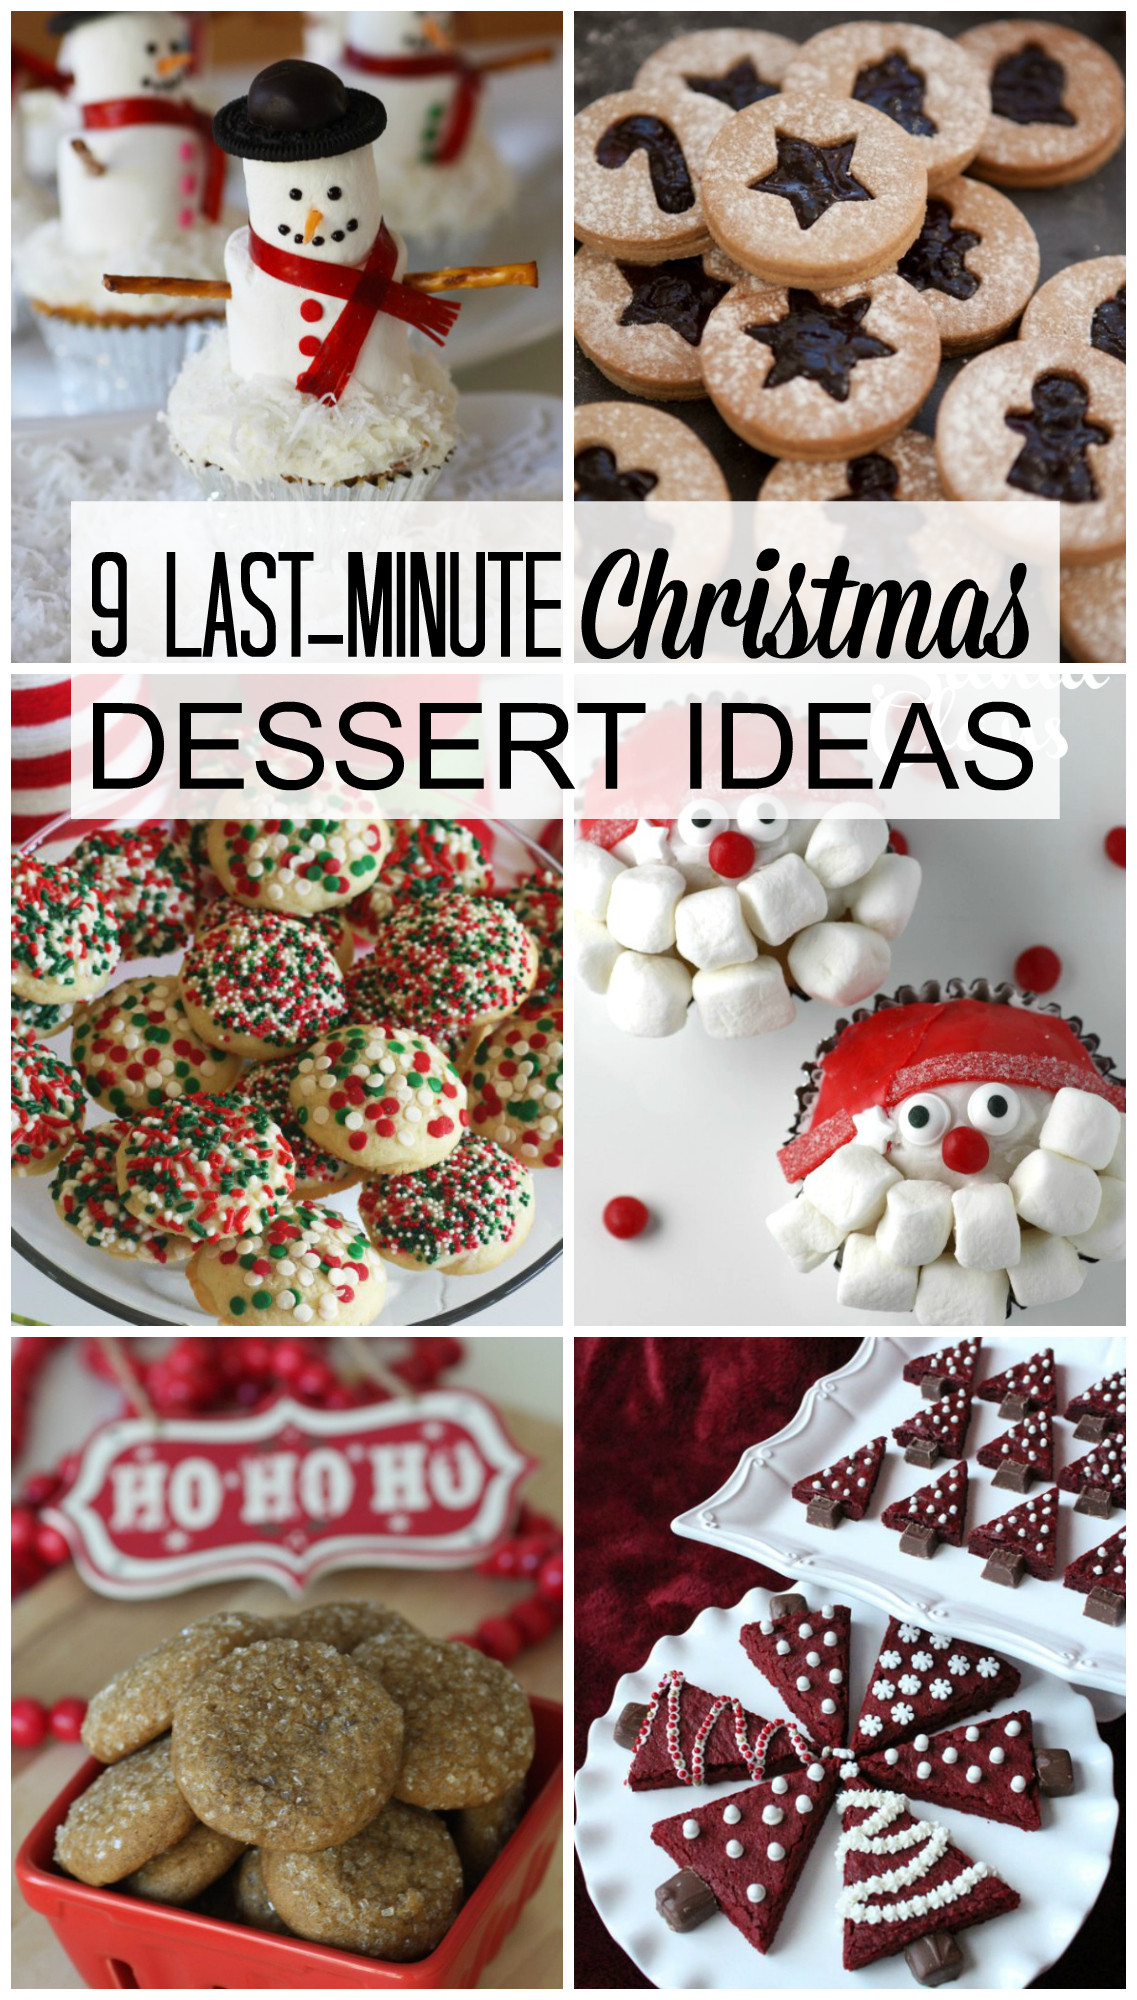 Christmas Dessert Ideas For Parties  9 Last Minute Christmas Dessert Ideas